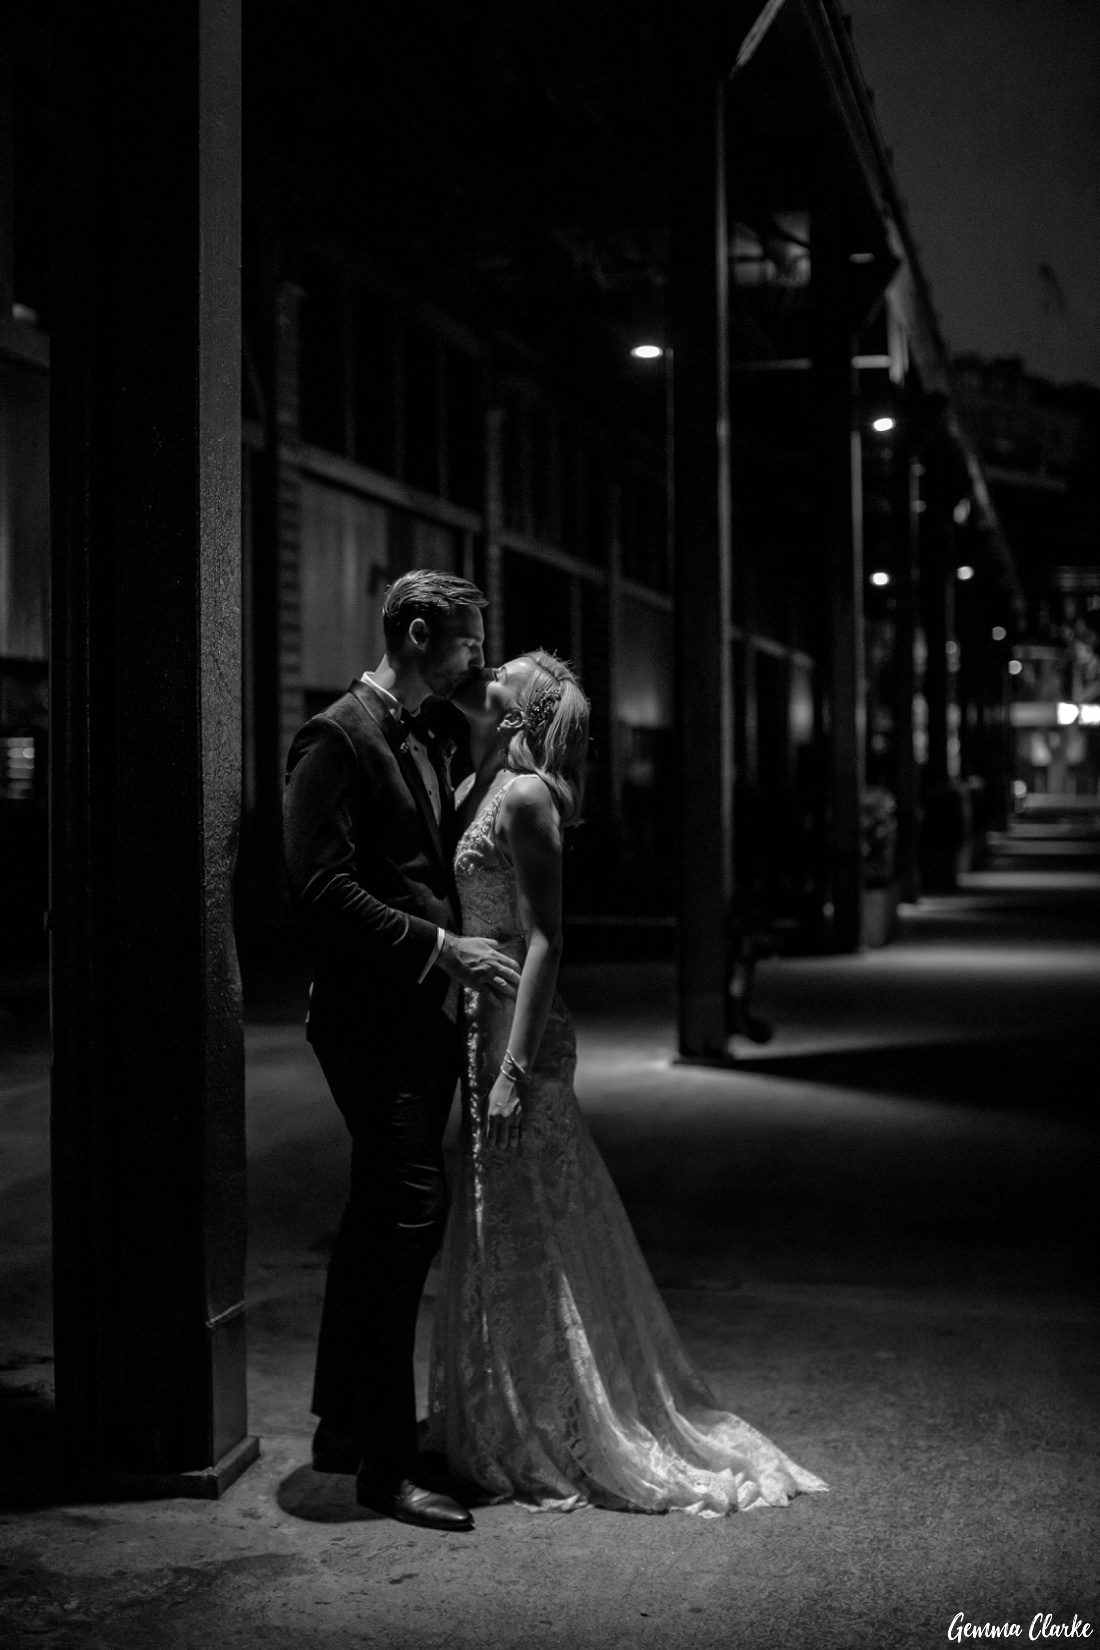 Moody feel to this capture of the bride and groom at night with the wharf warehouses in the background at this Cafe Morso Wedding